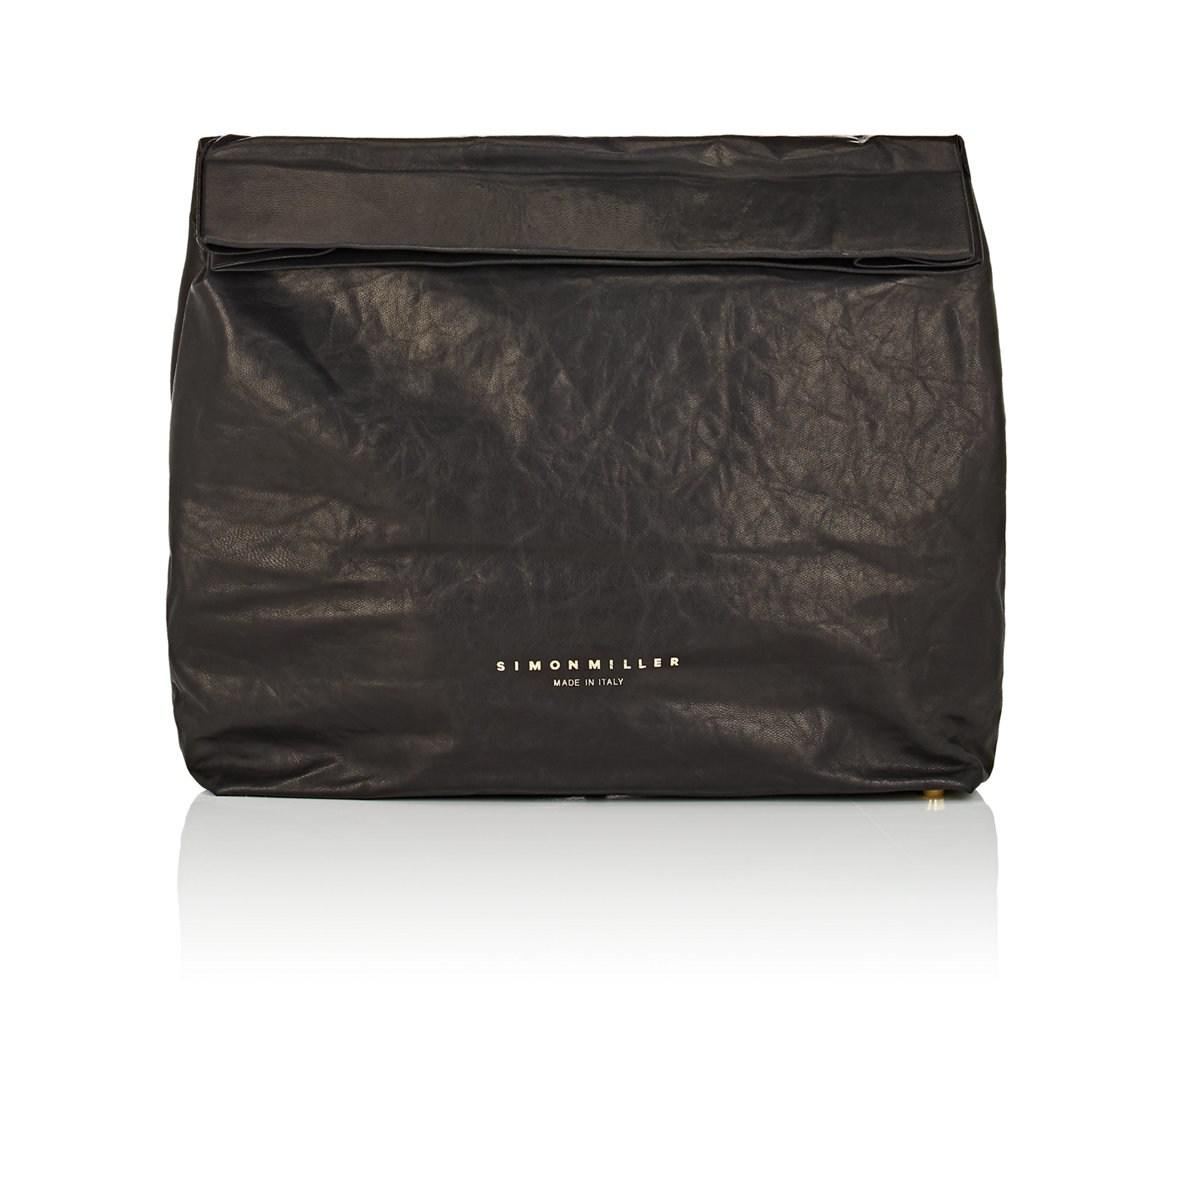 Simon Miller Extra Large Leather Lunch Bag in Black - Lyst 0d1be617f652a